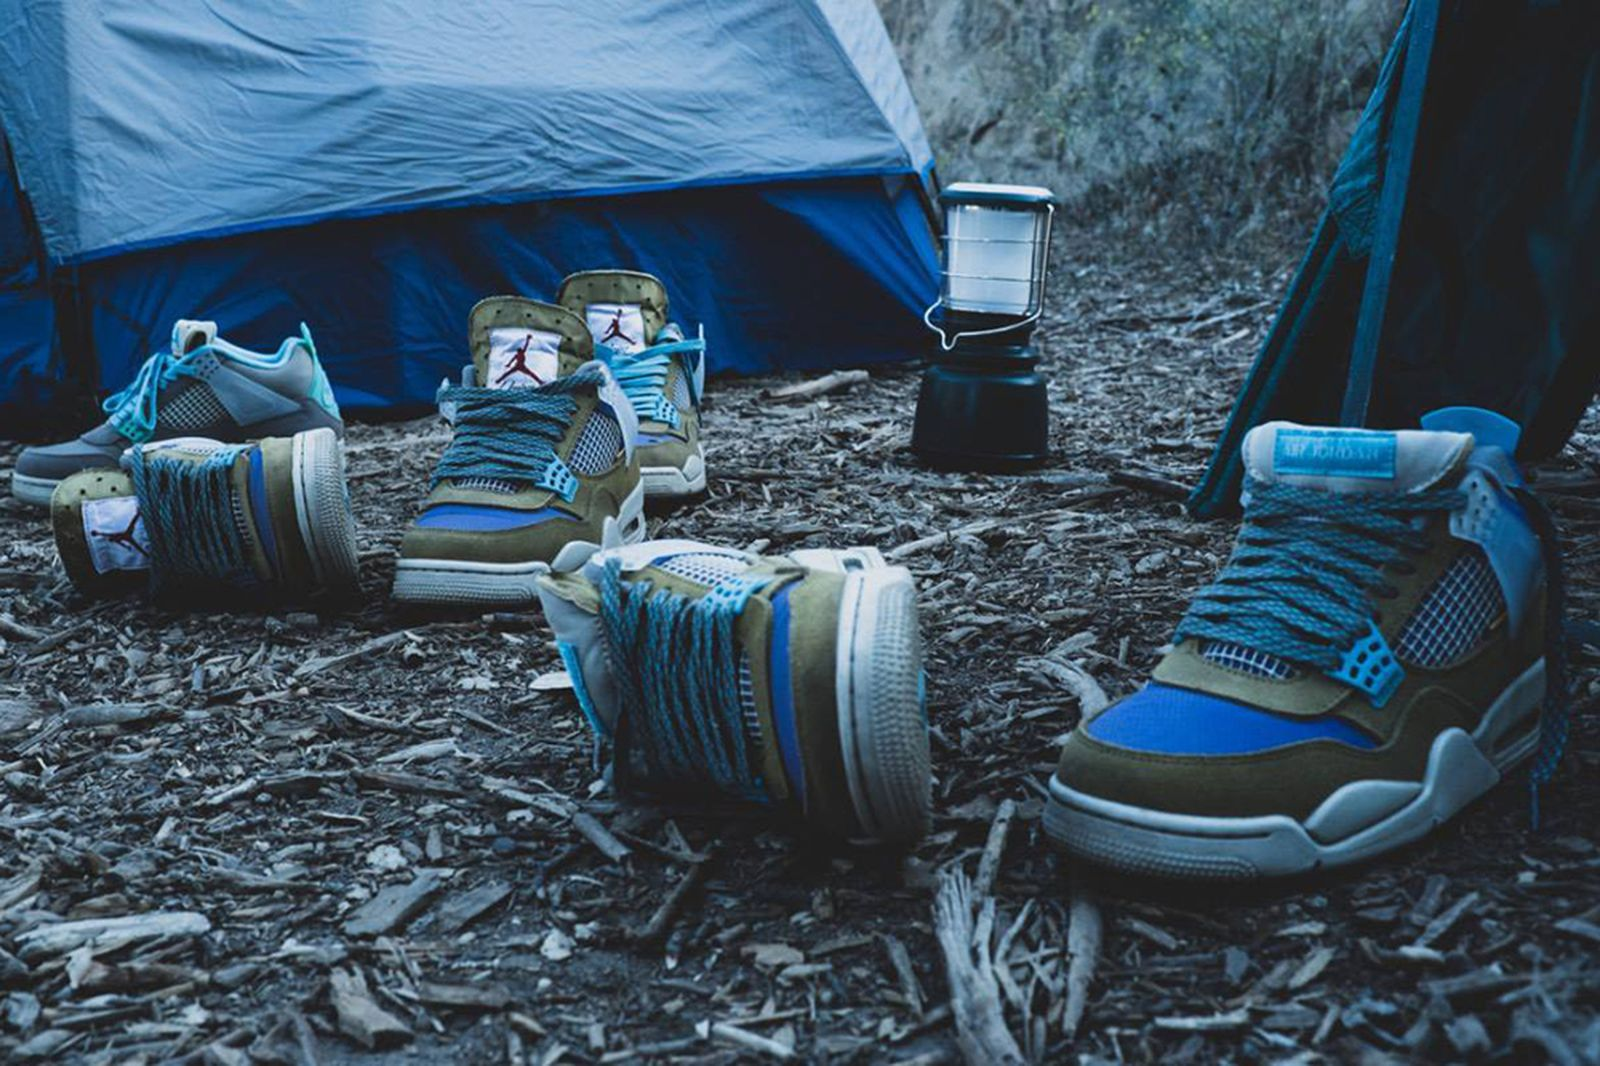 union-air-jordan-4-tent-and-trail-release-date-price-11